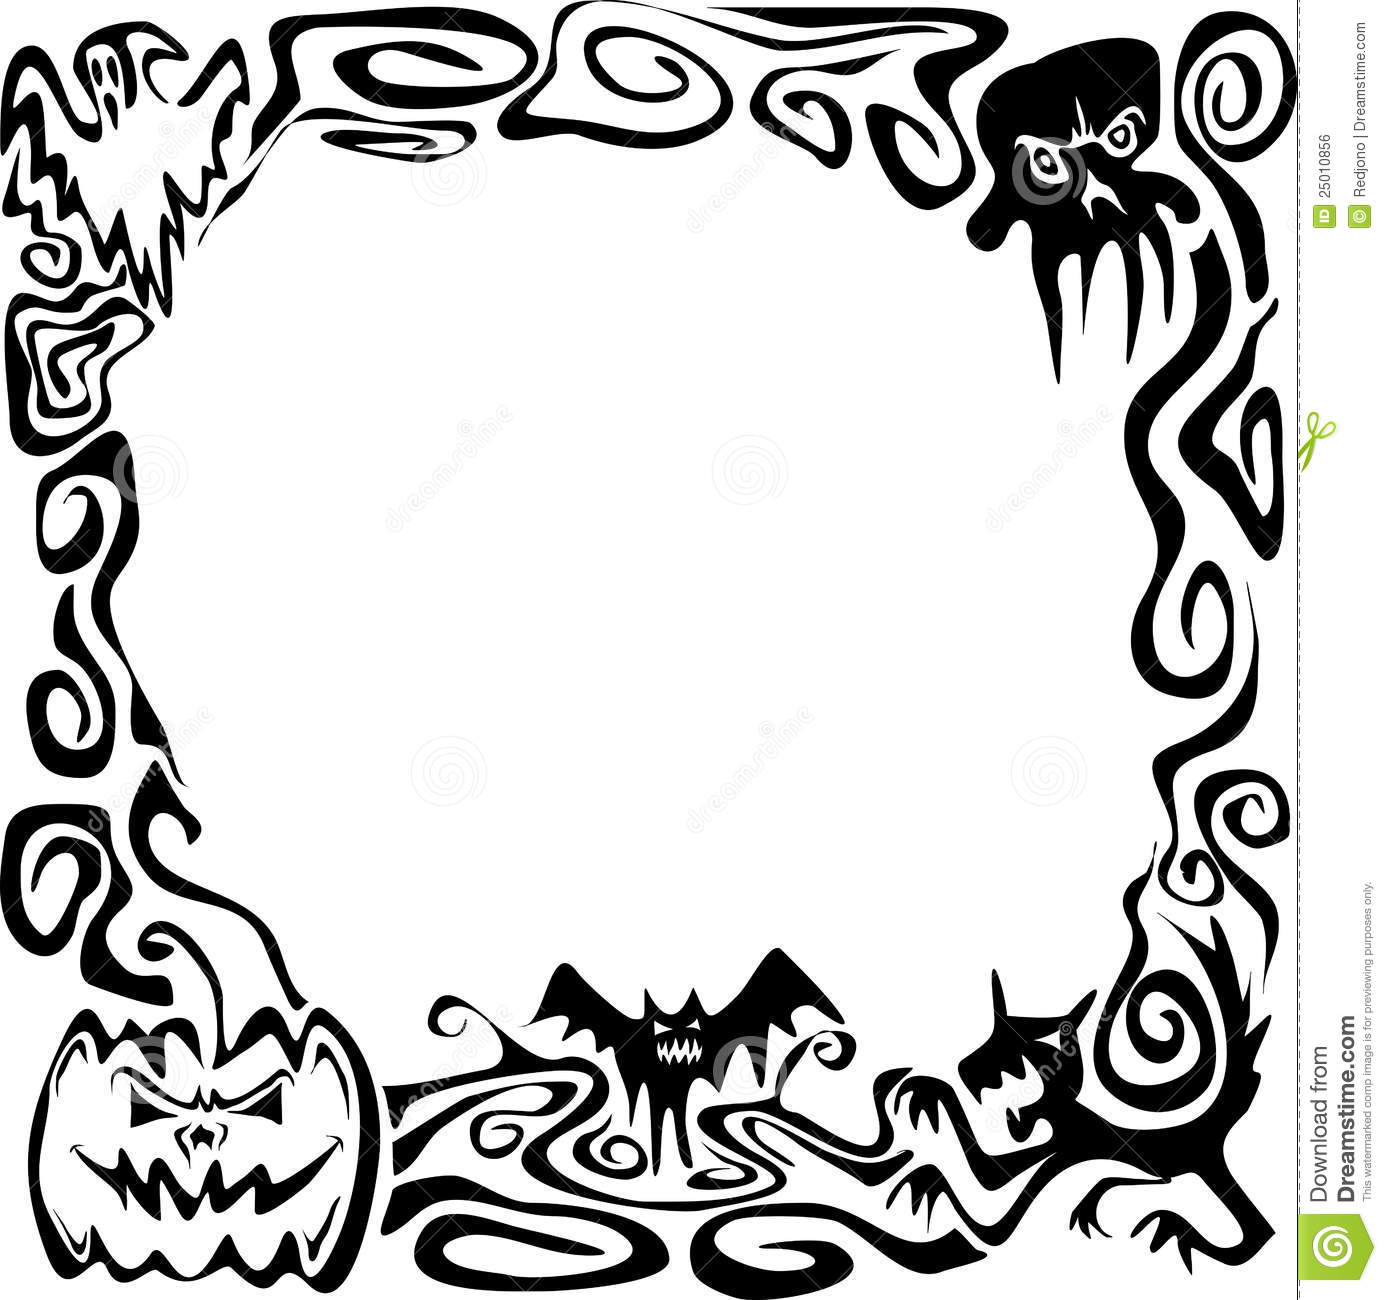 2014 10 01 archive further Jack O Lantern Drawing also Free Antique Graphic For Halloween moreover Post creepy Letters Font 334757 likewise Cartoon Halloween Drawings. on scary halloween look